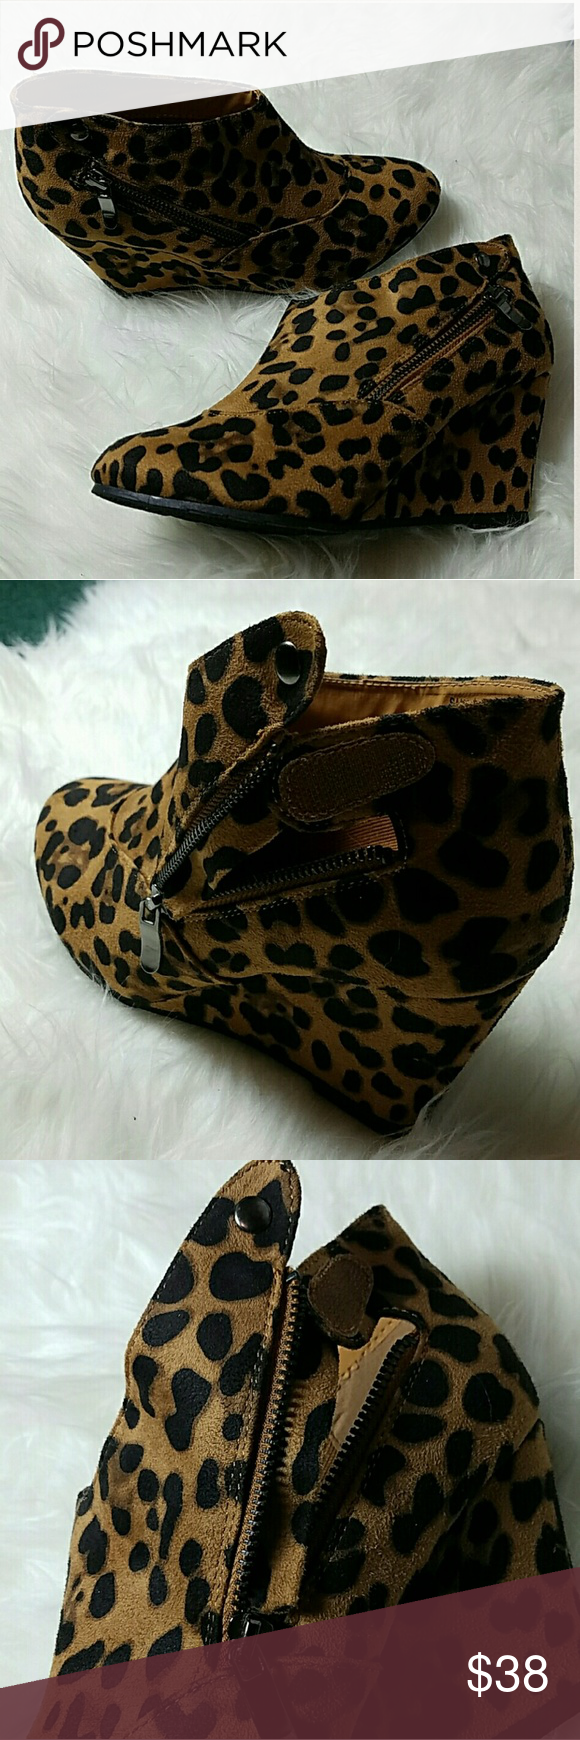 Leopard Suede Wedges Ankle Booties Made with soft PU Suede, Leopard print.  This are unique Wedges with zipper on the sides plus a button. Rare to find and super comfortable to wear.  TRUE TO SIZE starlight footwear  Shoes Ankle Boots & Booties